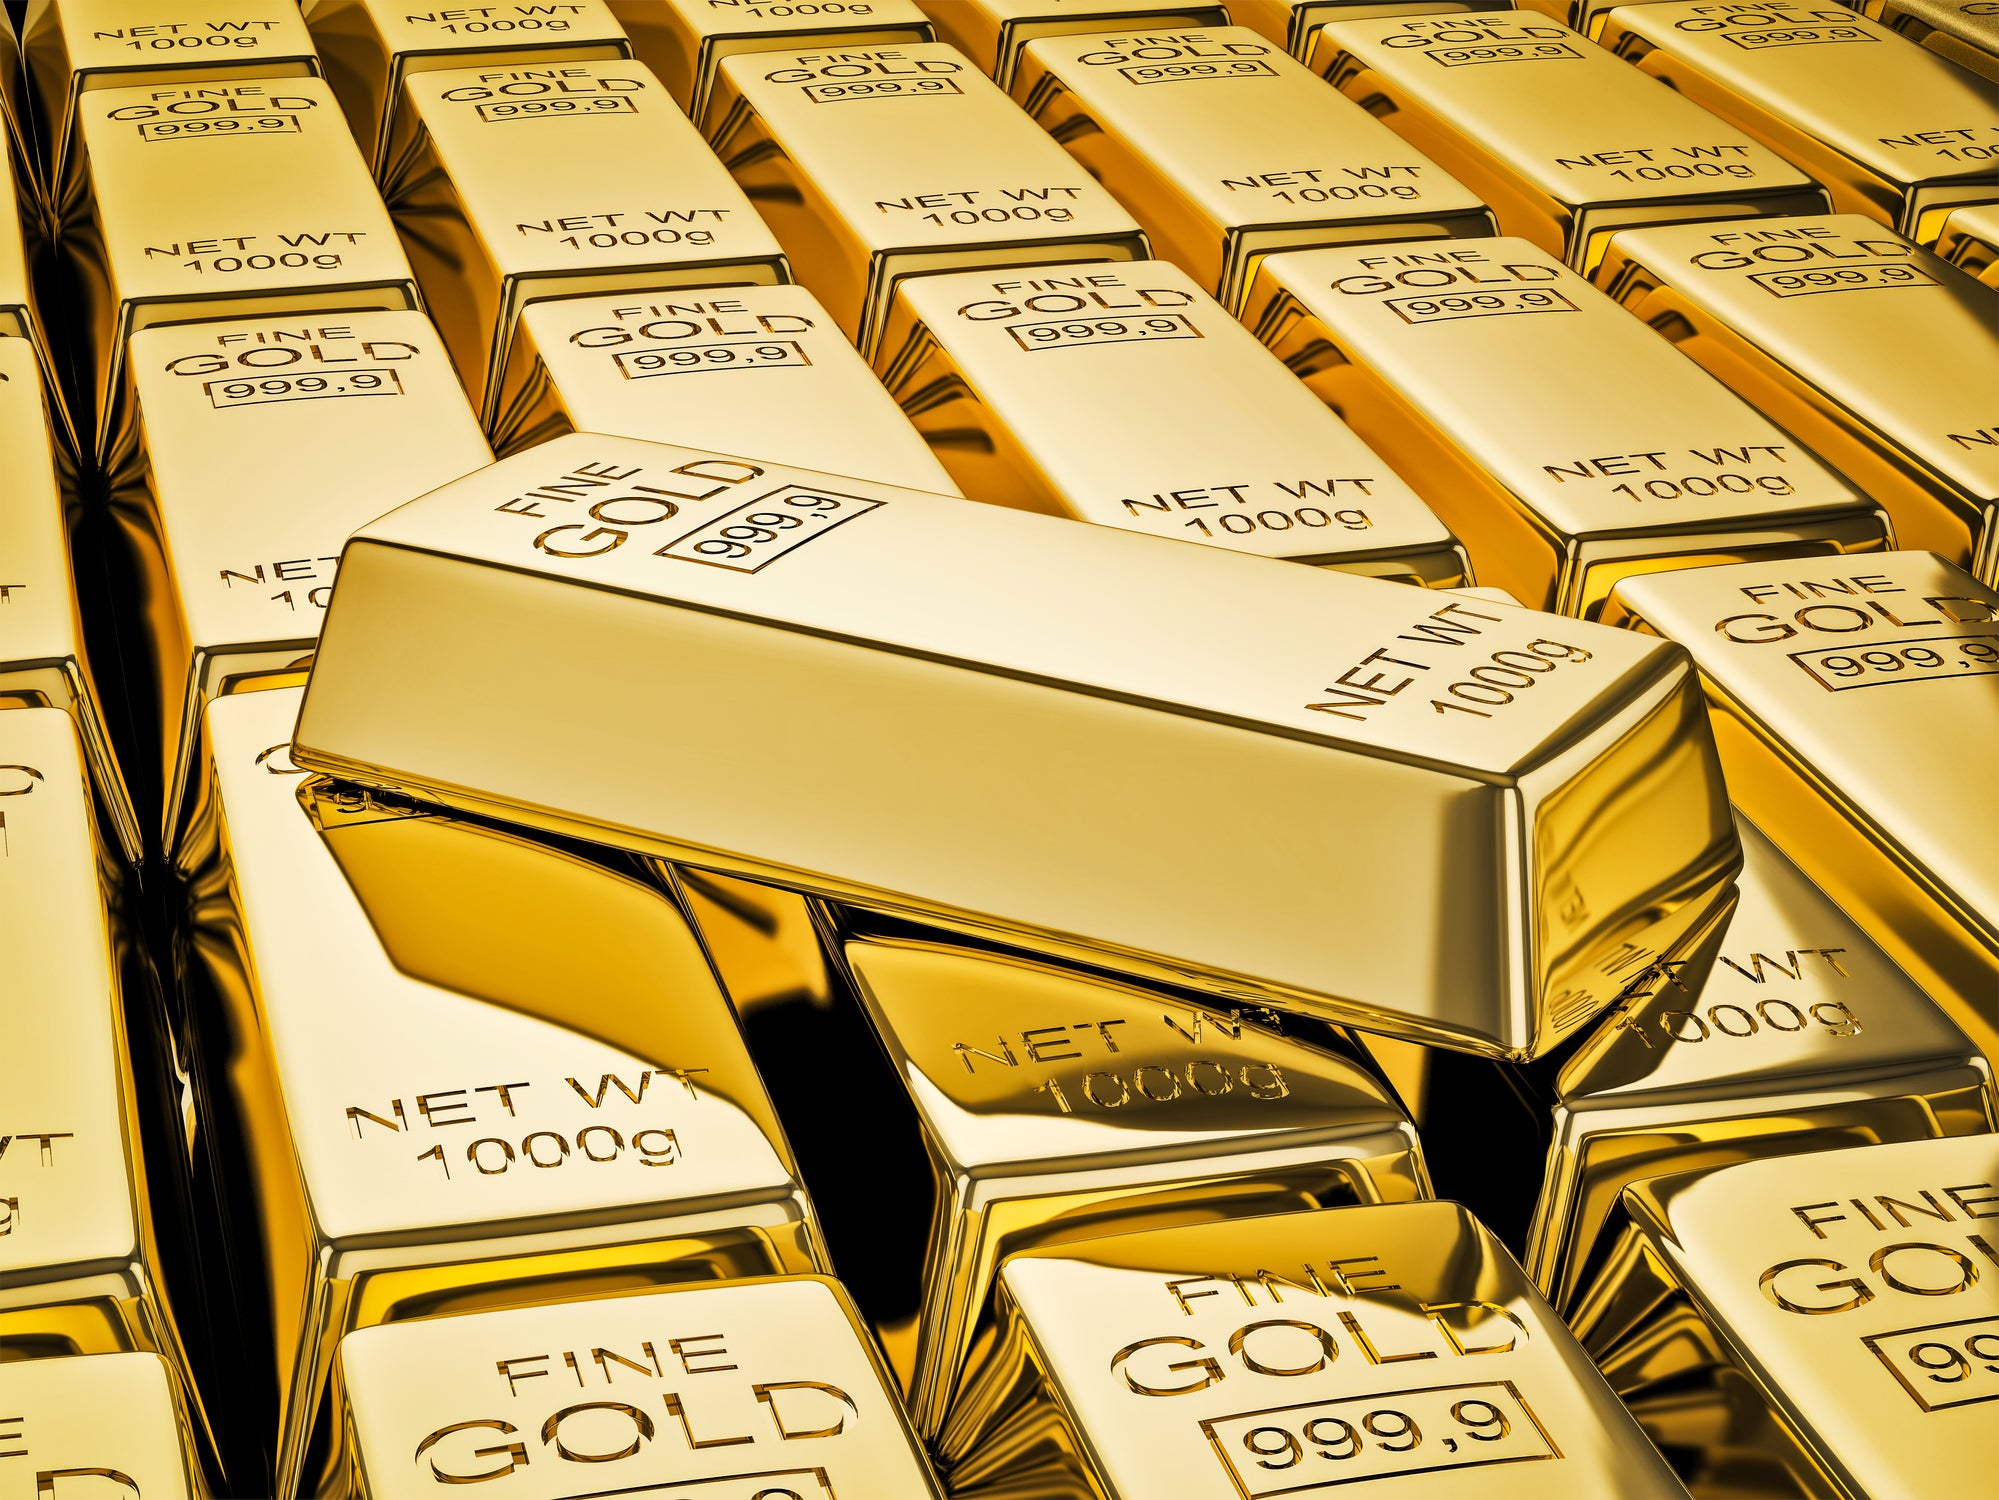 5 Top Gold Stocks For 2019 The Motley Fool